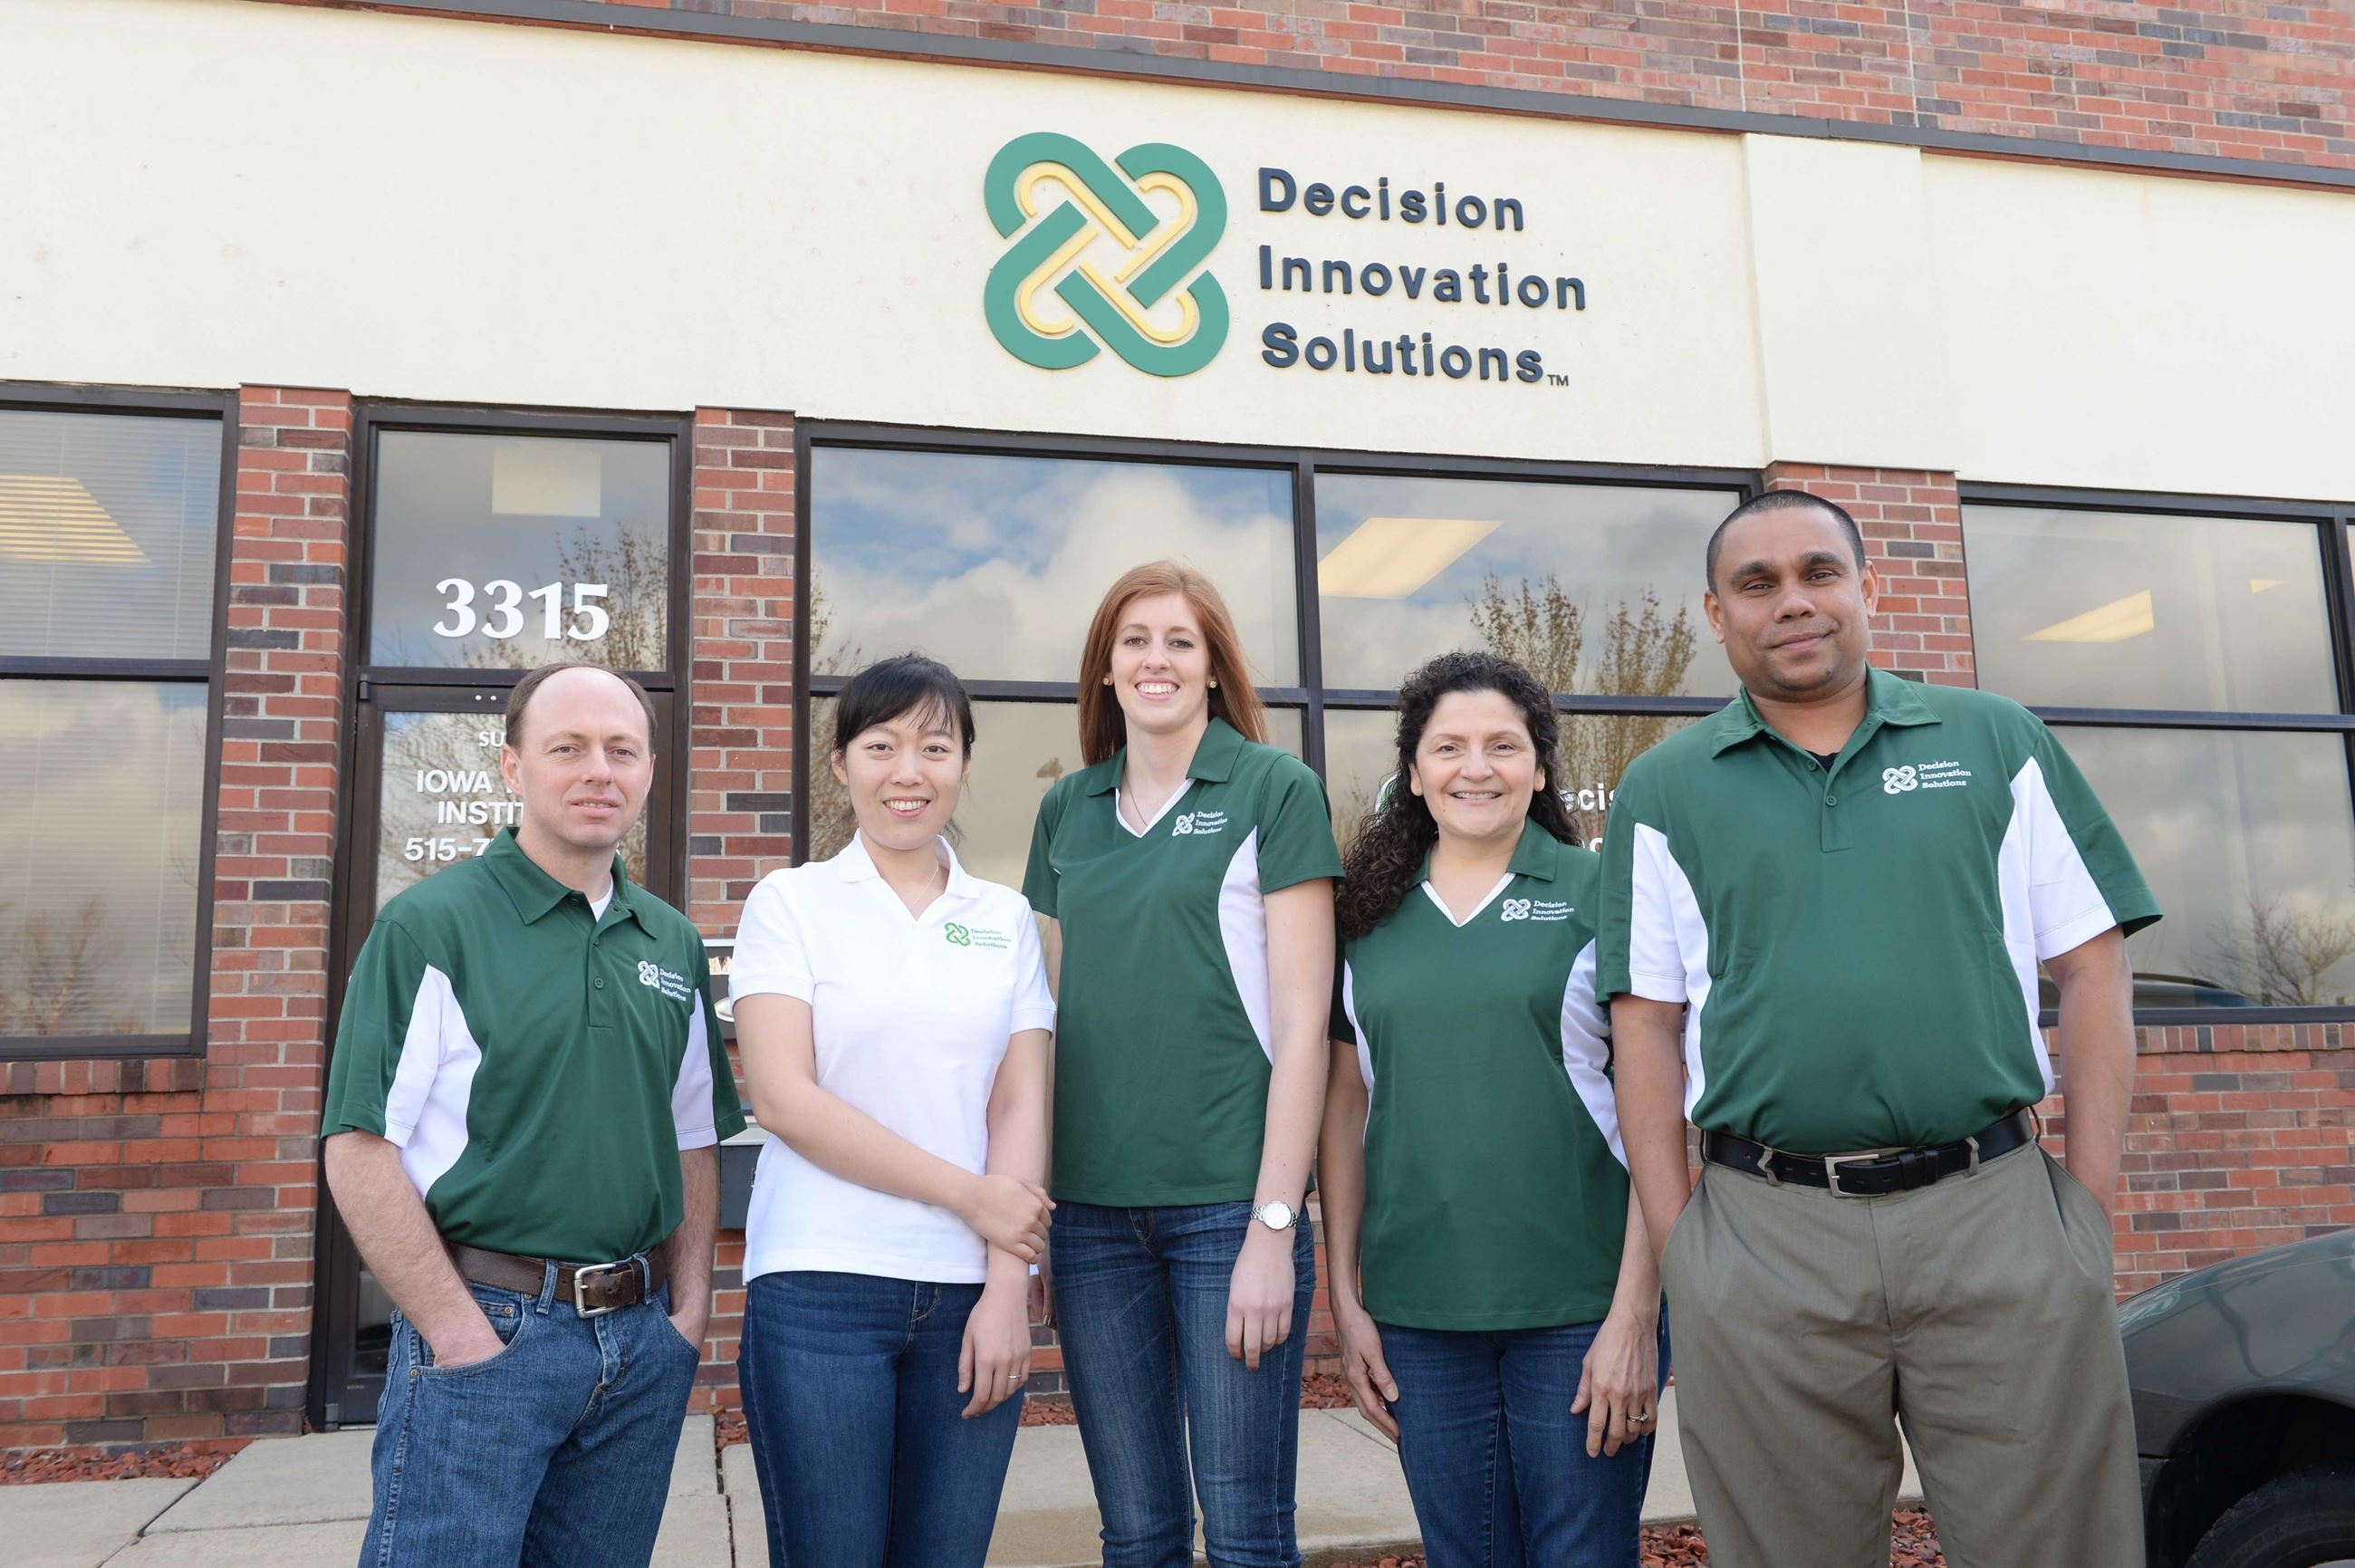 Decision Innovation Solutions Company Photo